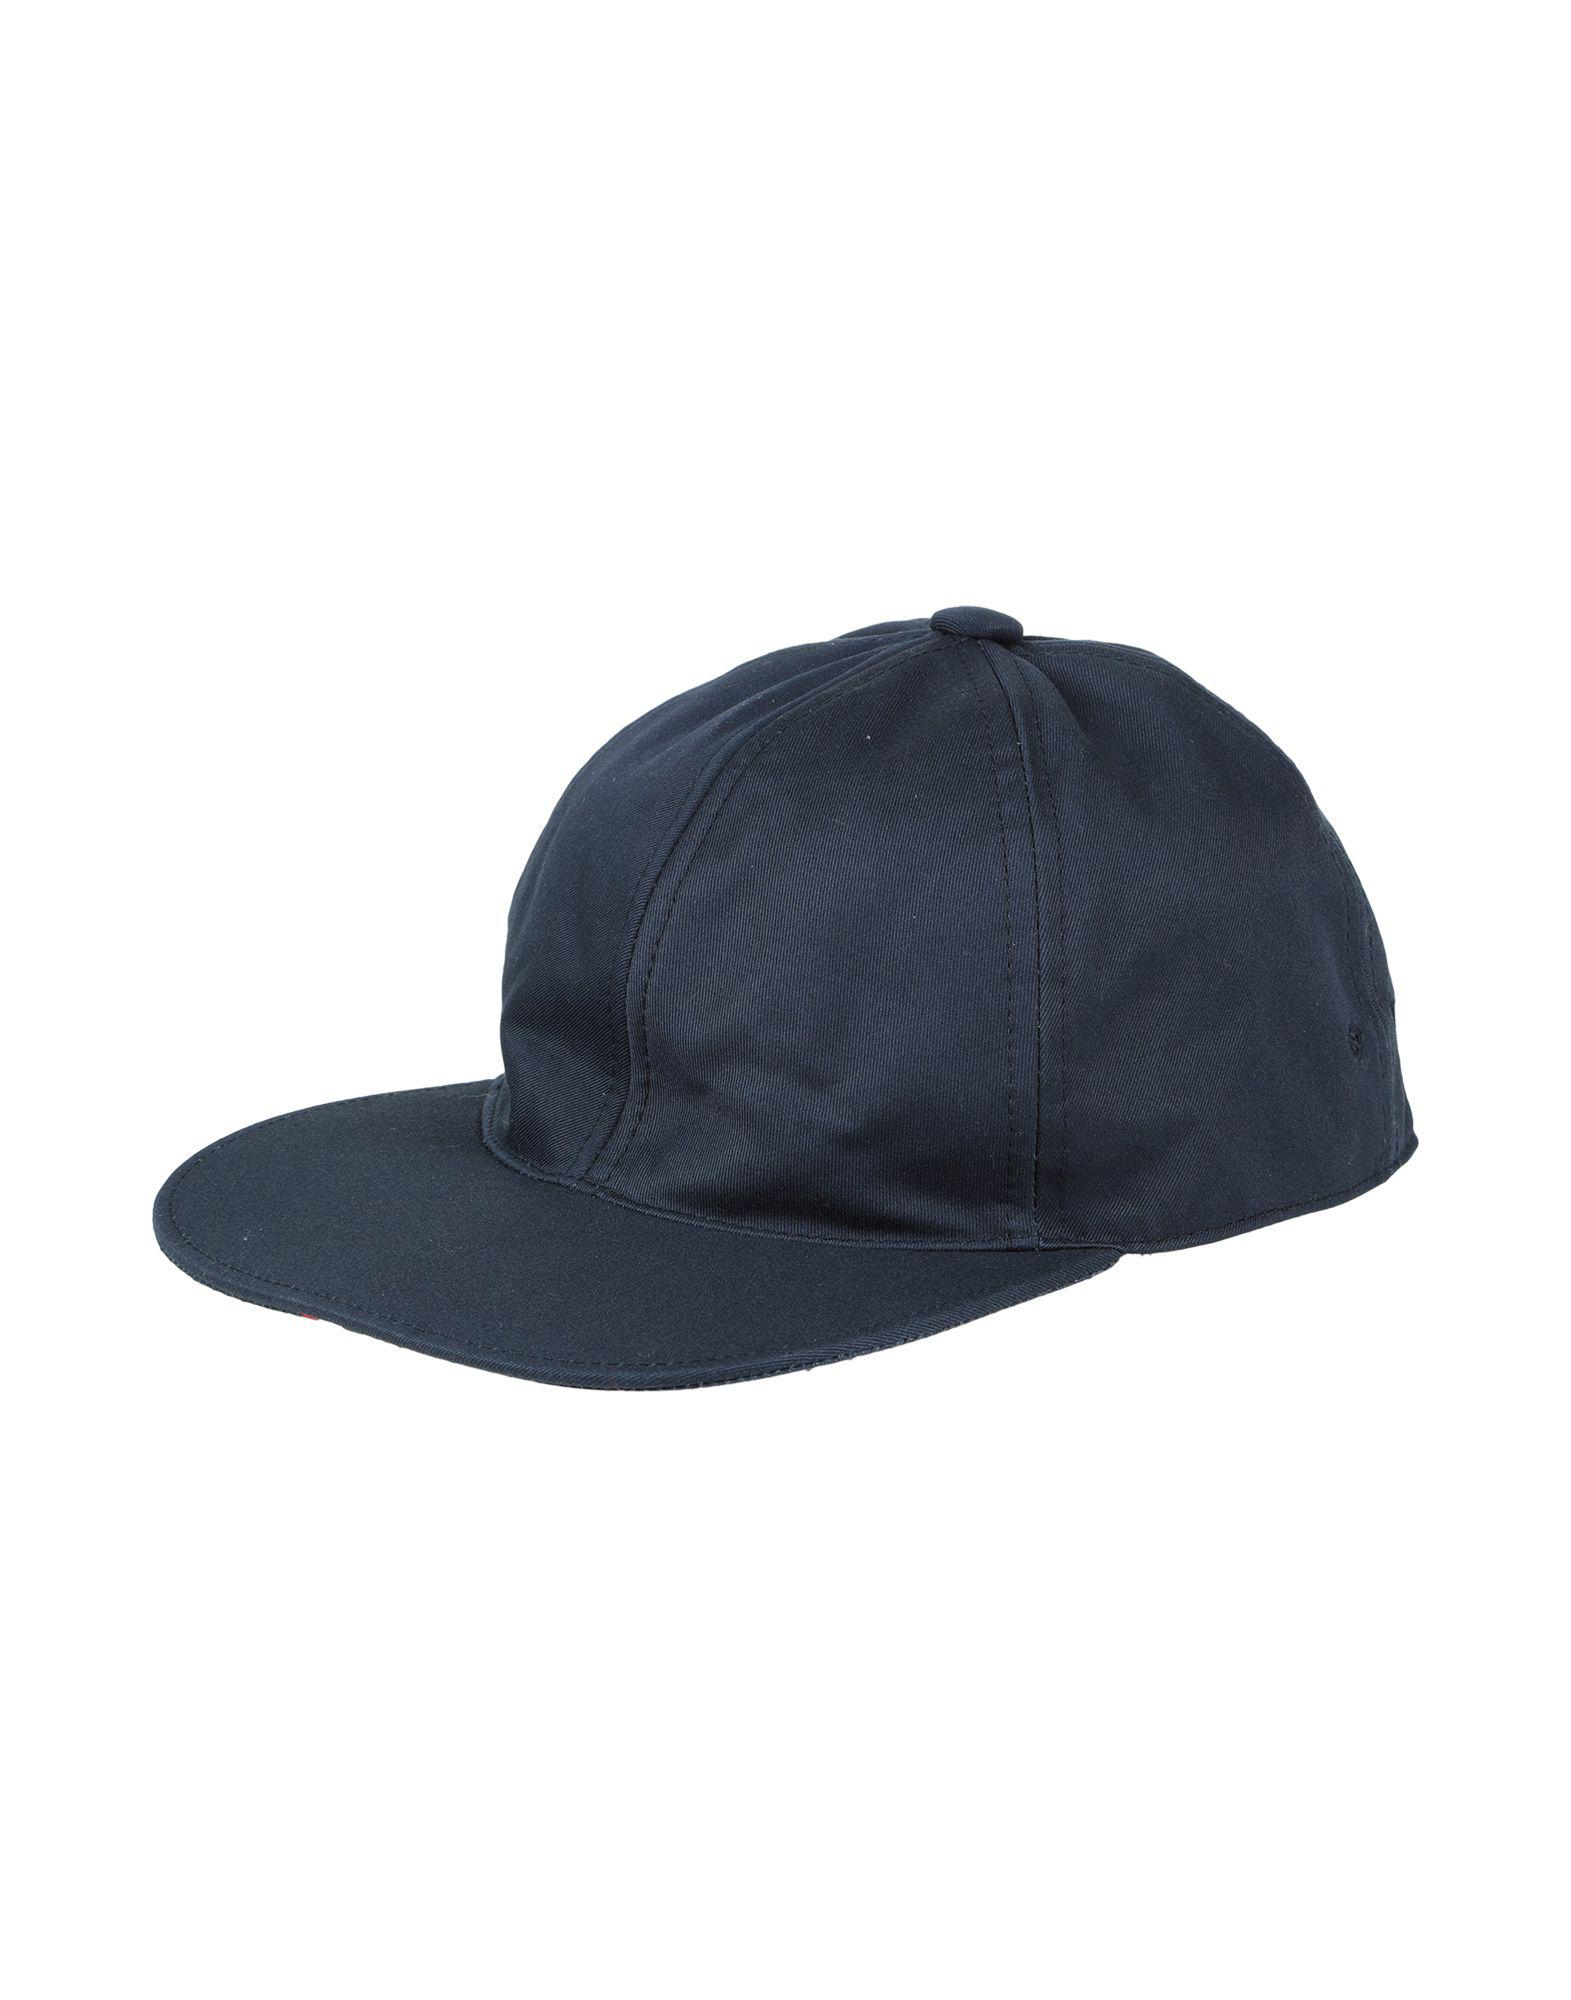 Lyst - Thom Browne Hat in Blue for Men 7e426d1ad19b